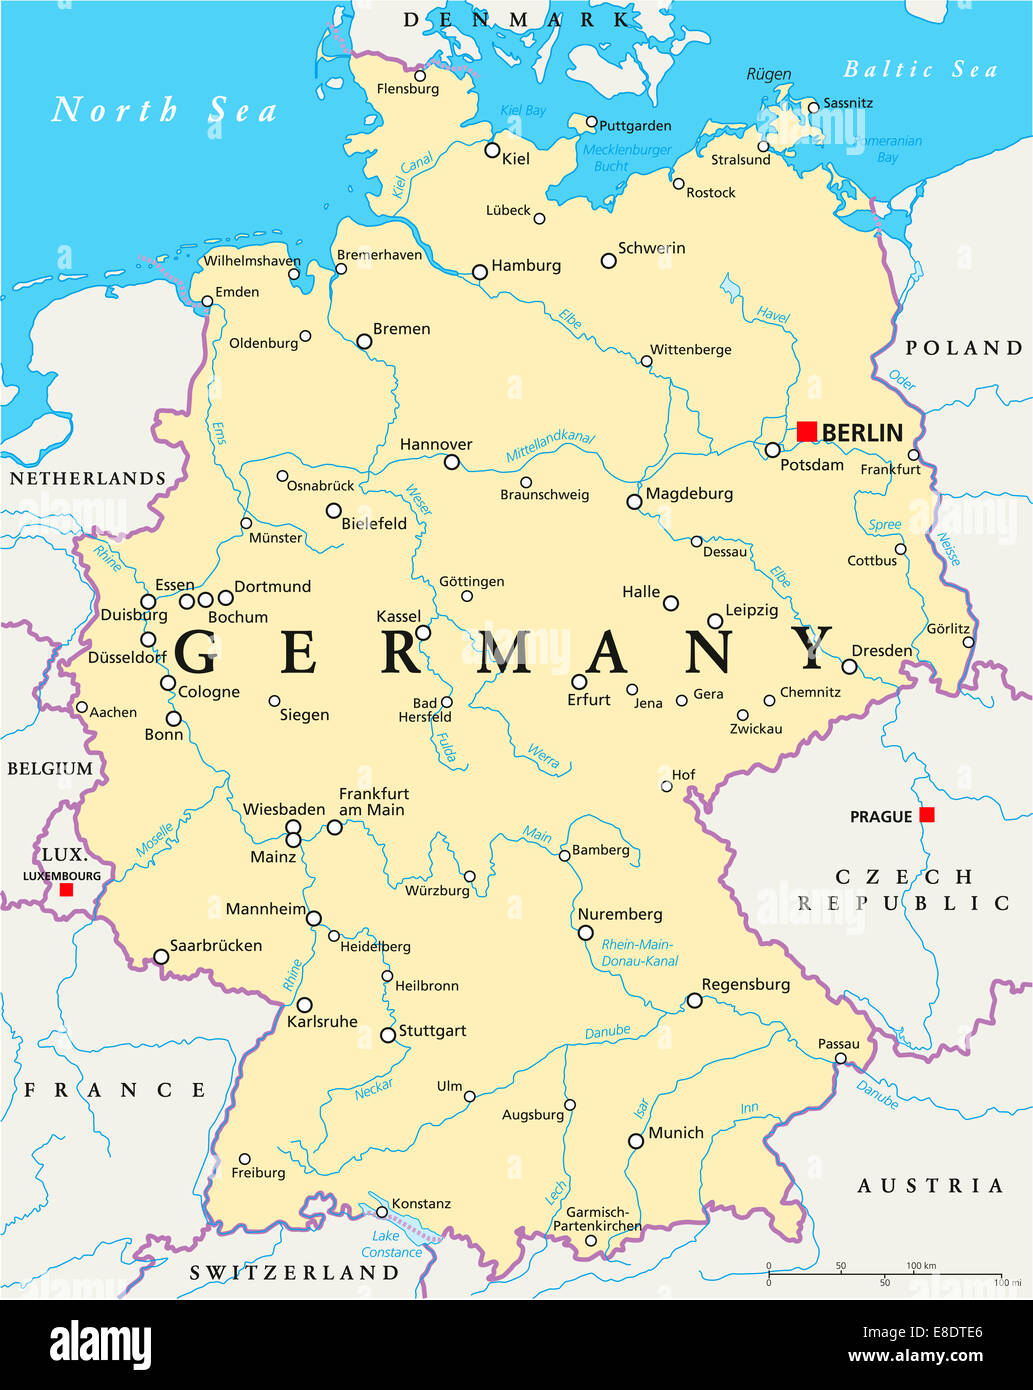 Berlin Map Of Germany.Germany Political Map With Capital Berlin National Borders Most